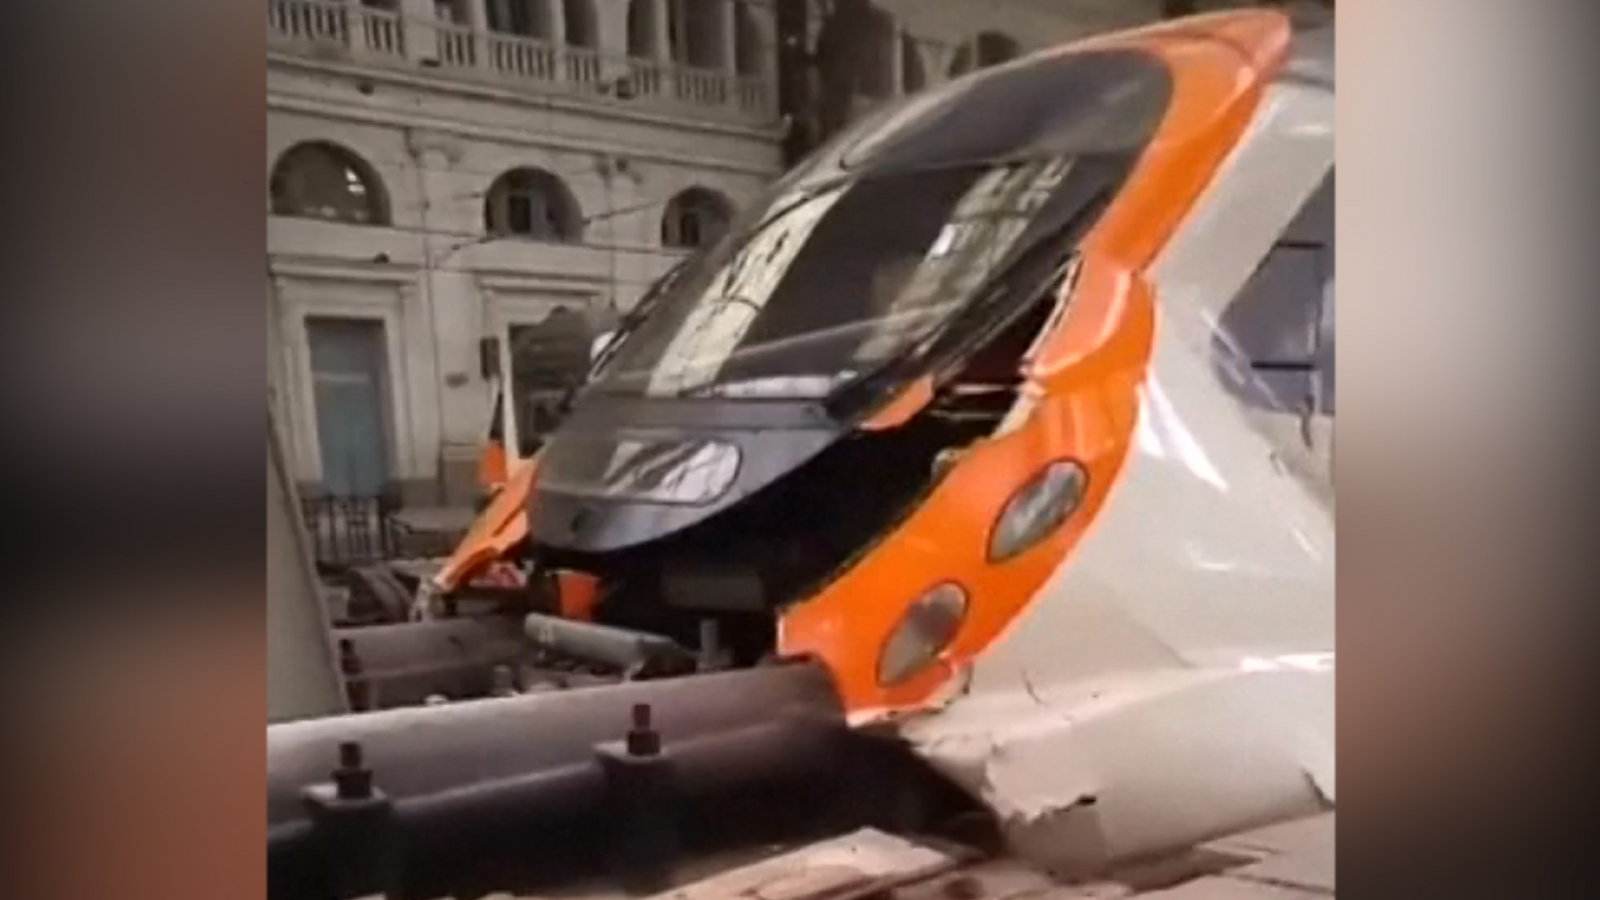 Commuter train crash in Barcelona station injures 48